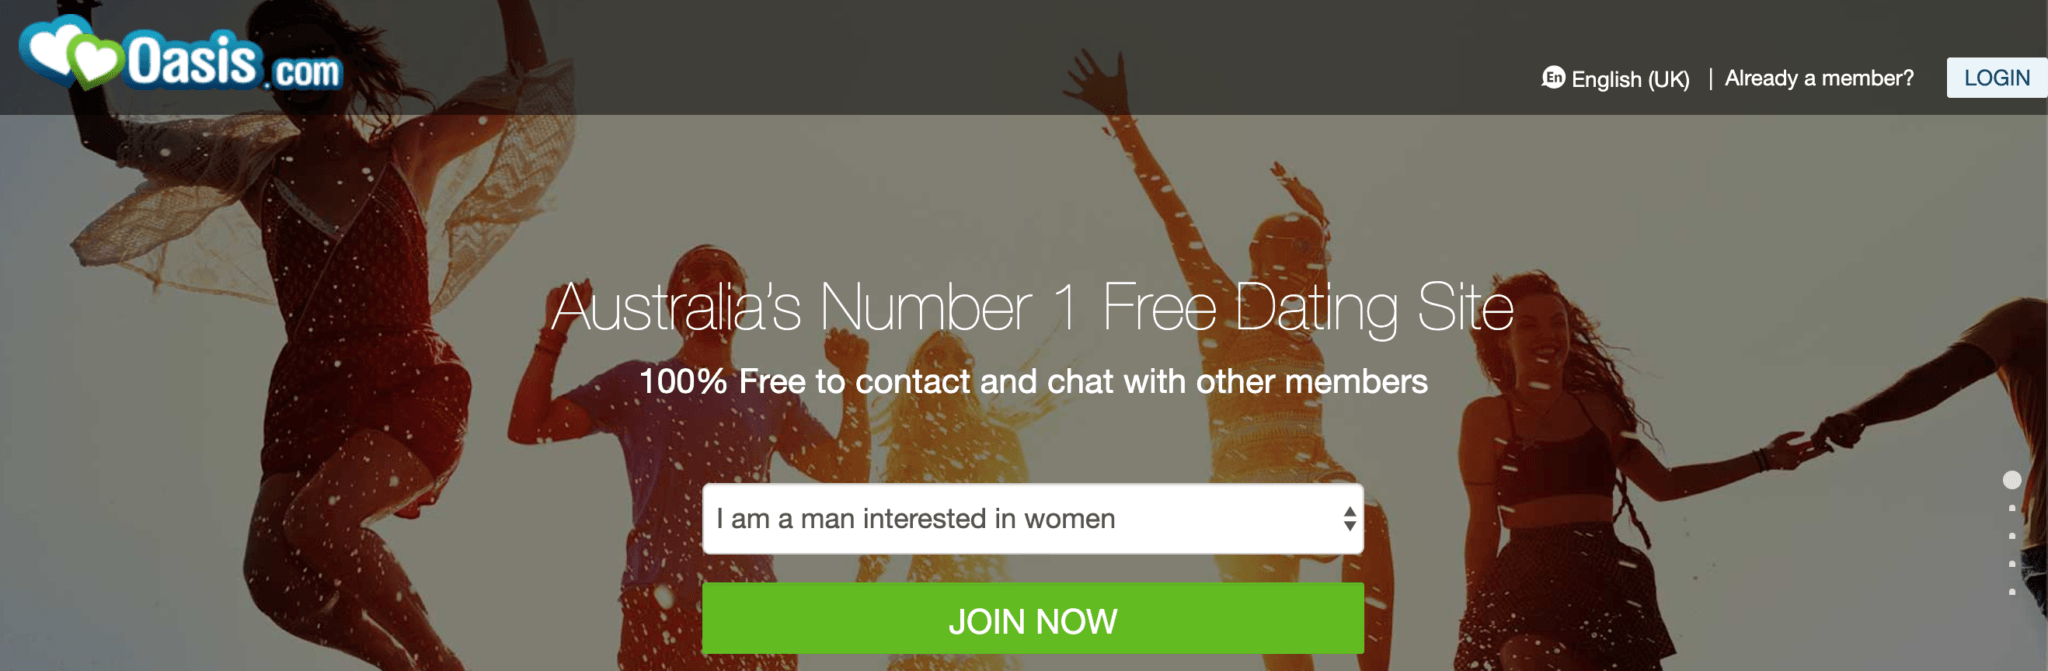 Top 10 dating apps for Australians in 2019 | Beanstalk Mums